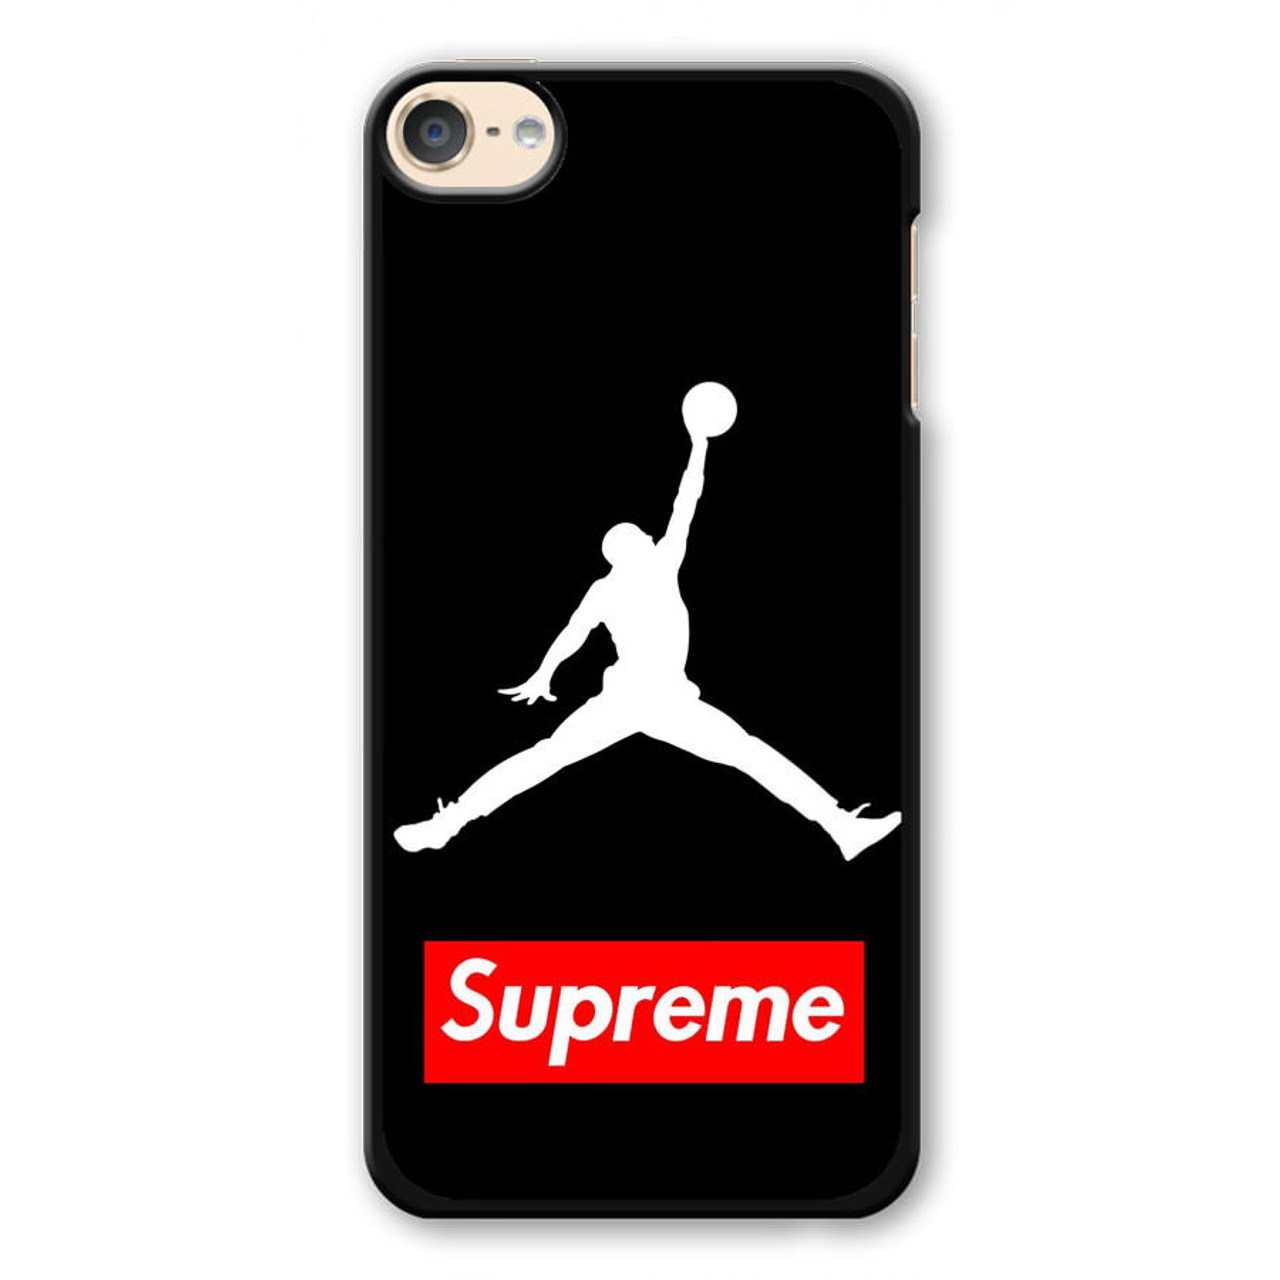 cf7d58f058ee6 Supreme Air Jordan iPod Touch 6 Case